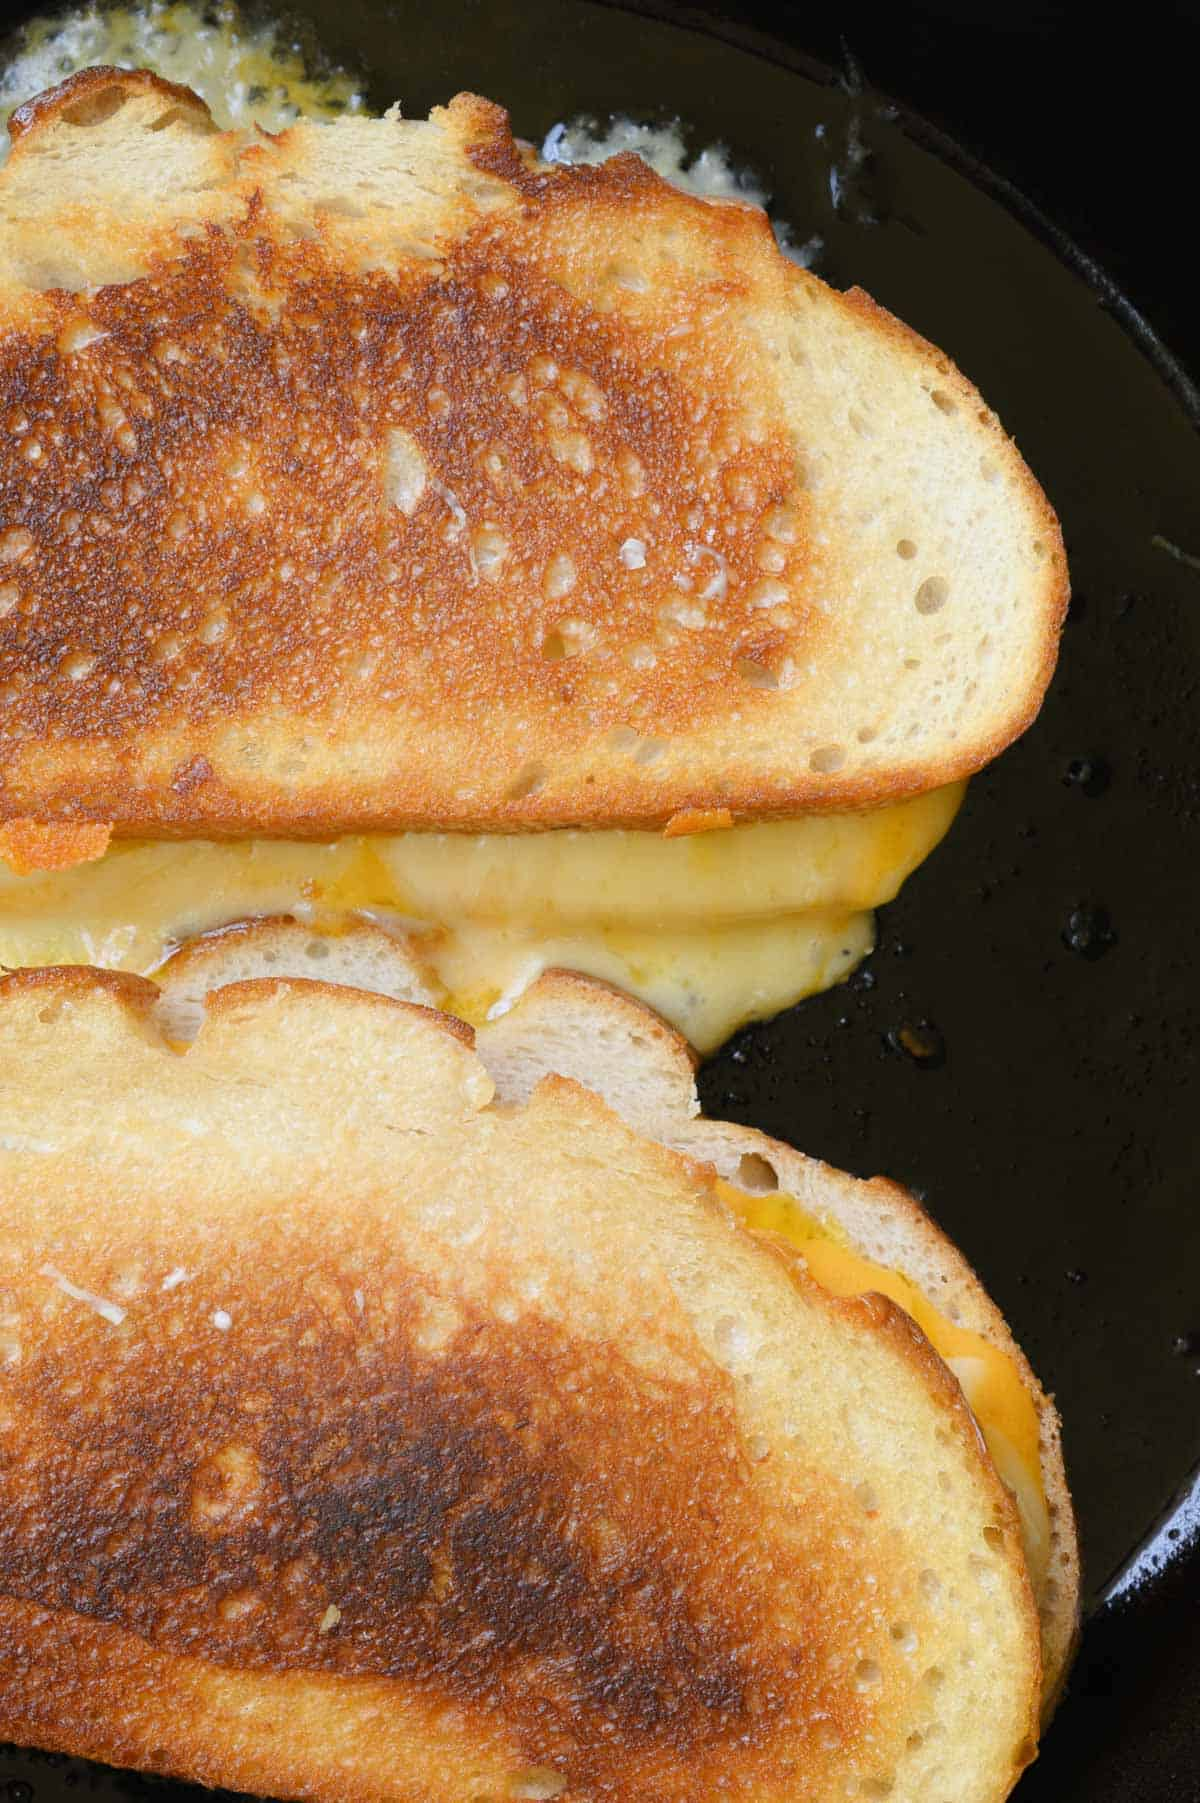 two grilled cheese sandwiches being cooked in a black skillet